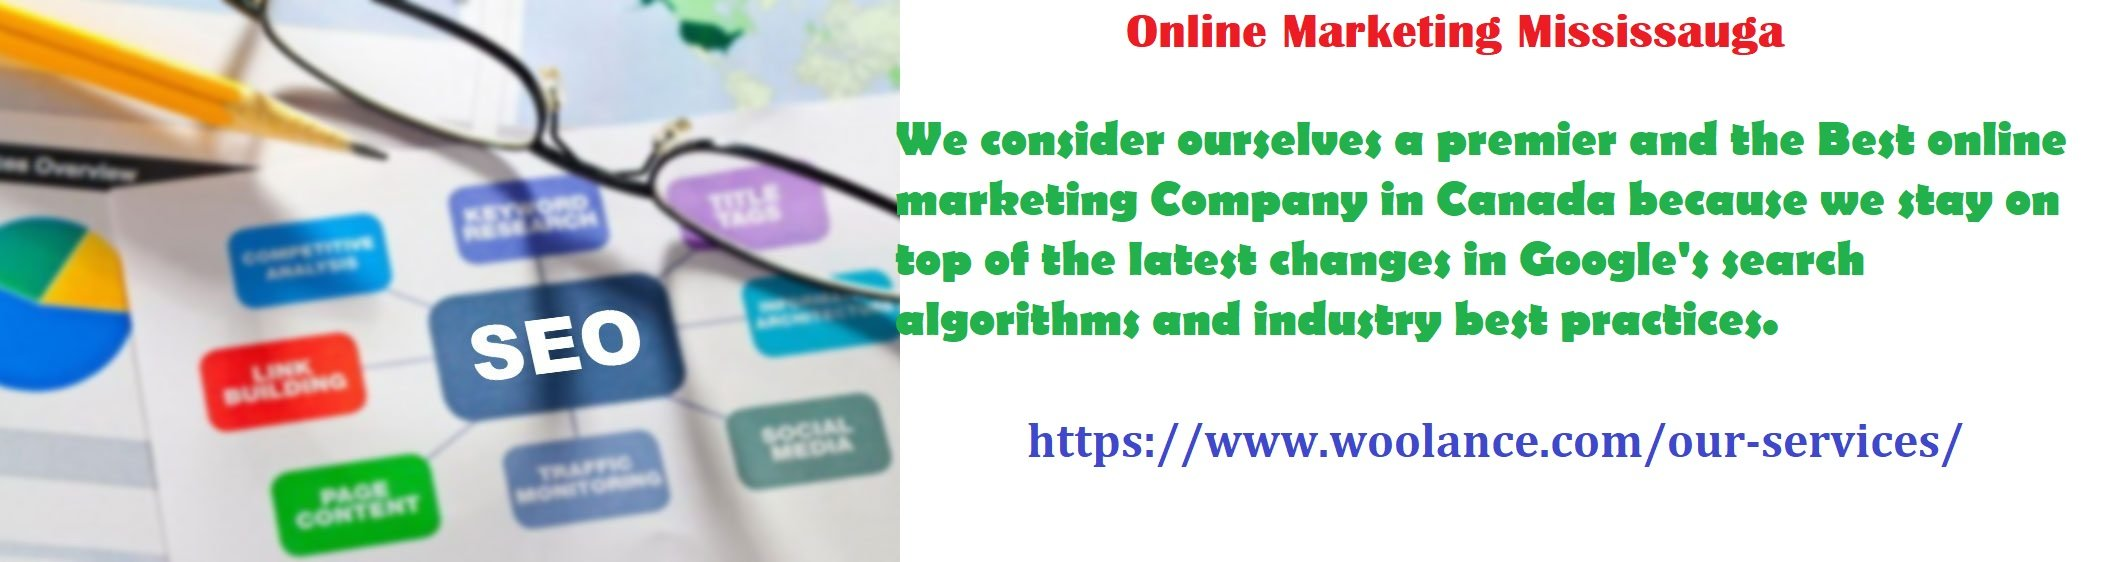 Online Marketing Mississauga